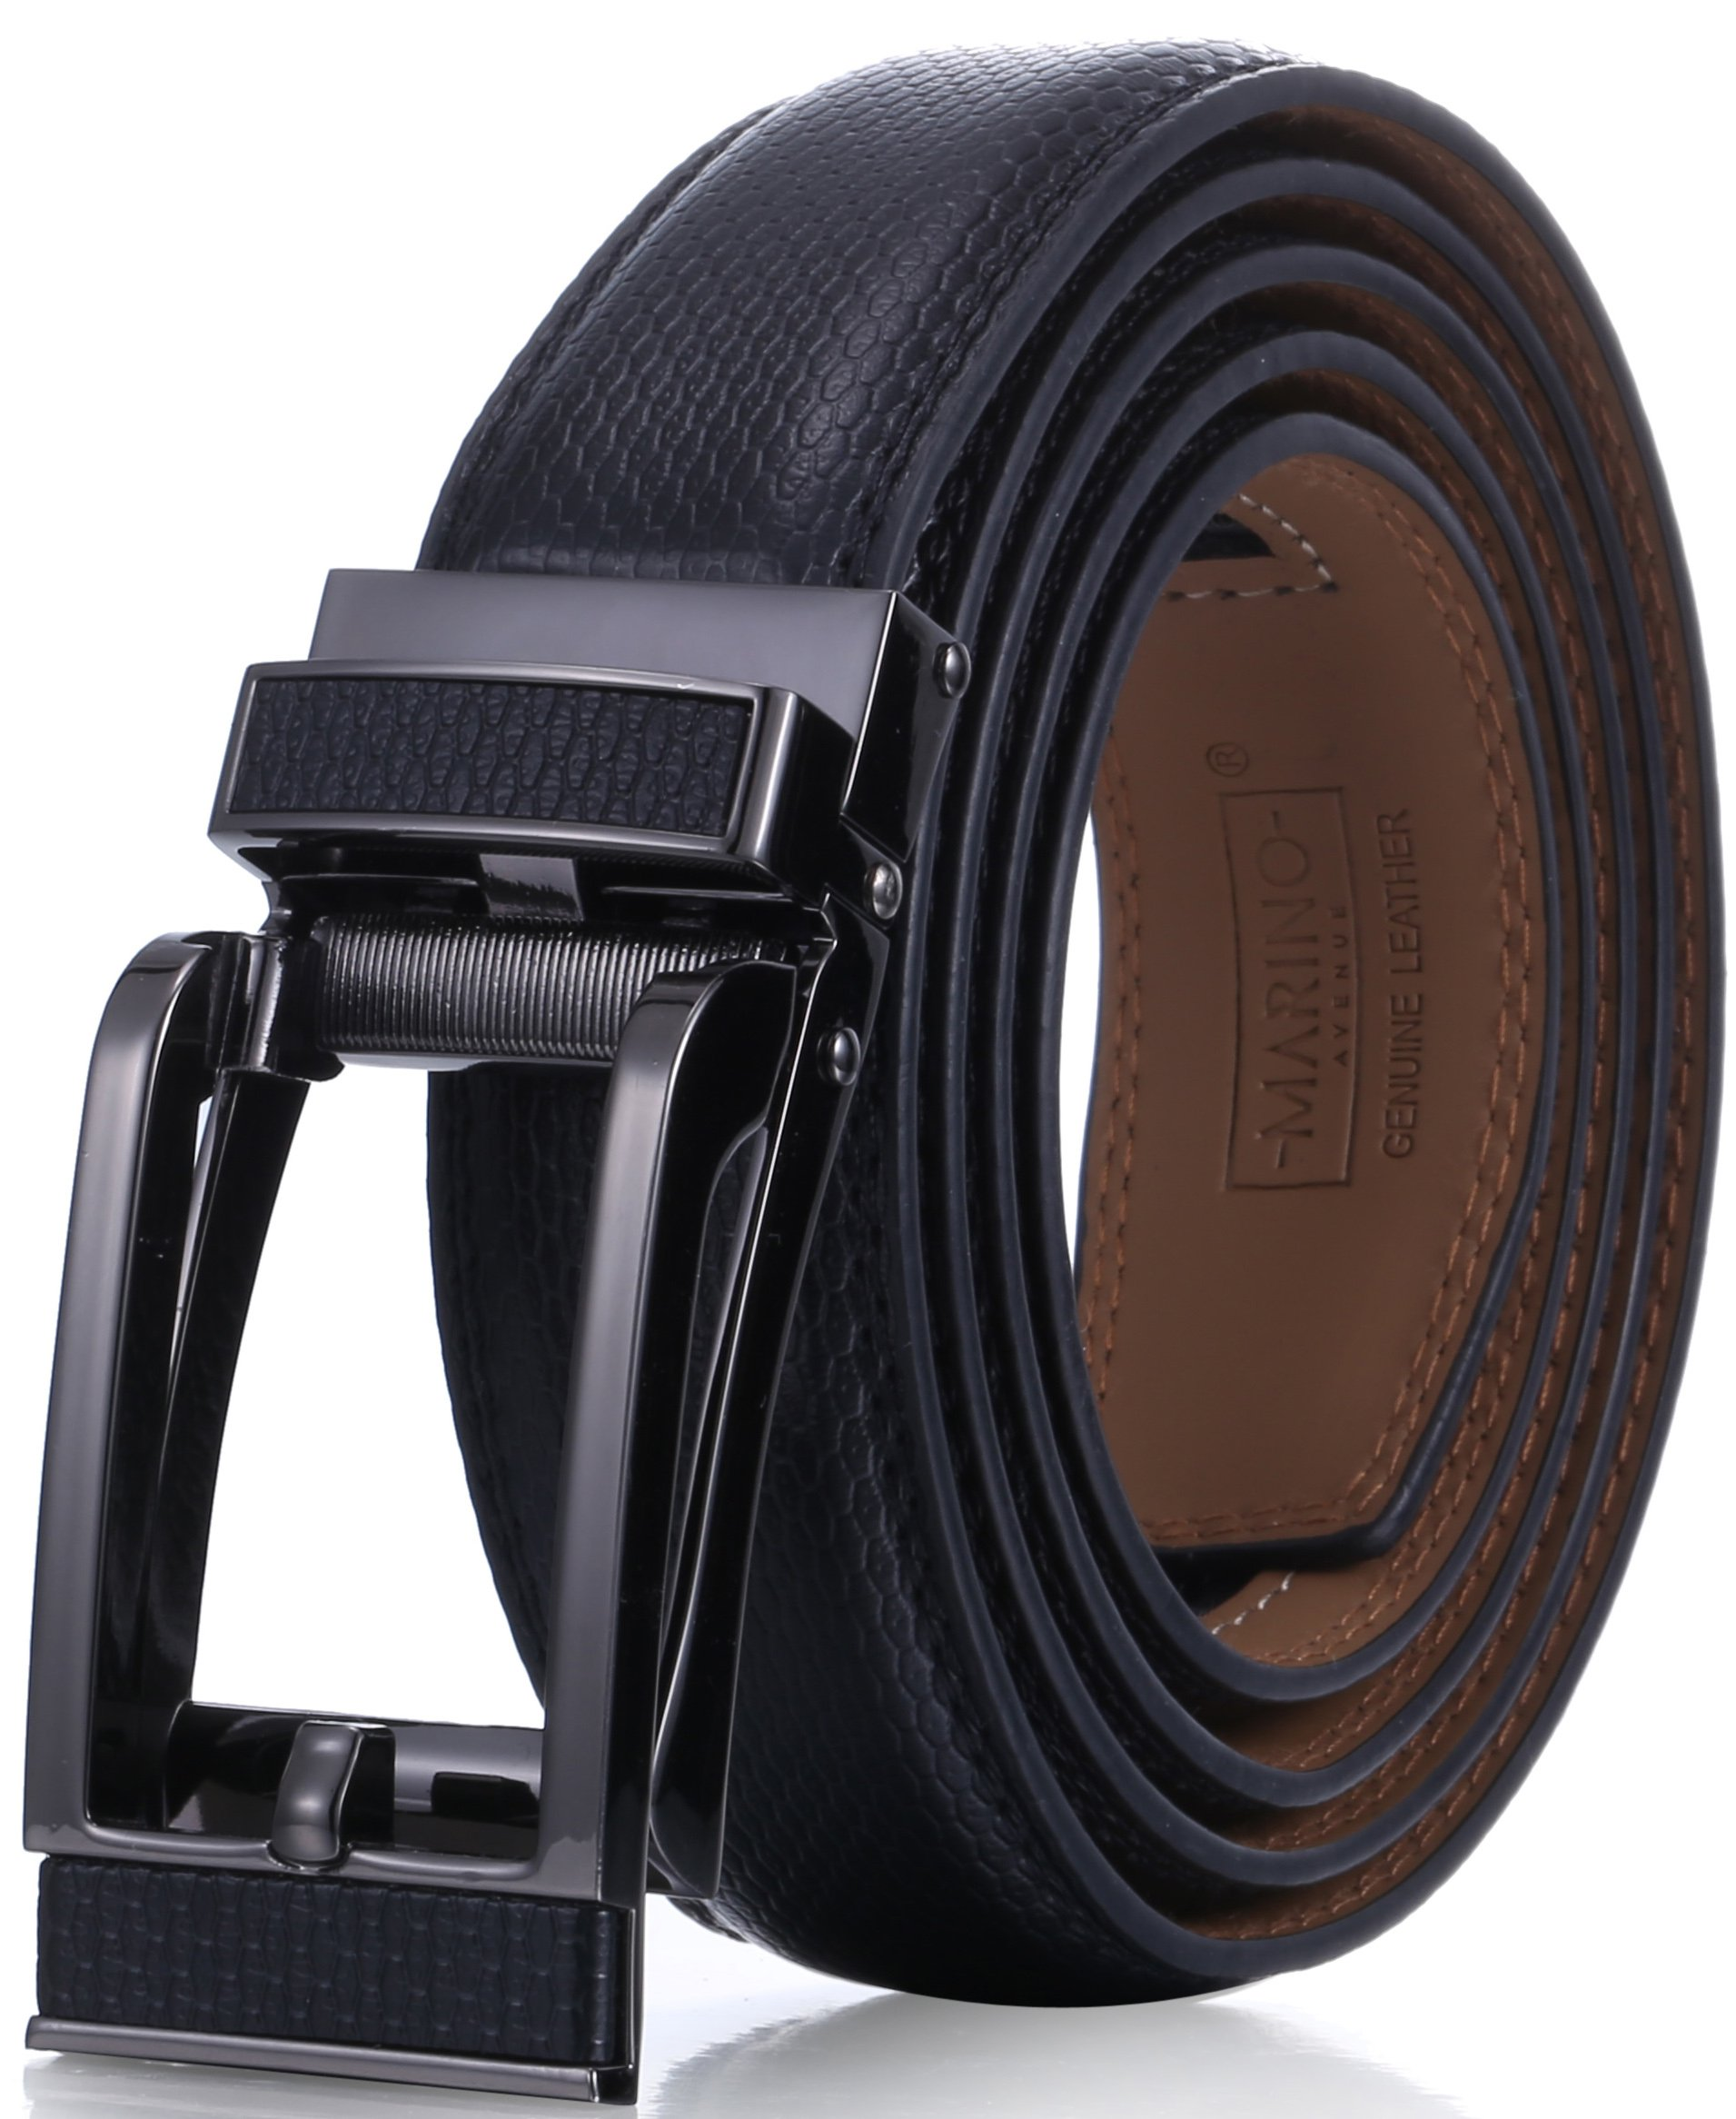 Marino Avenue Mens Genuine Leather Ratchet Dress Belt with Open Linxx Leather Buckle, Enclosed in an Elegant Gift Box - Black - Style 155 - Custom Up to 44'' Waist